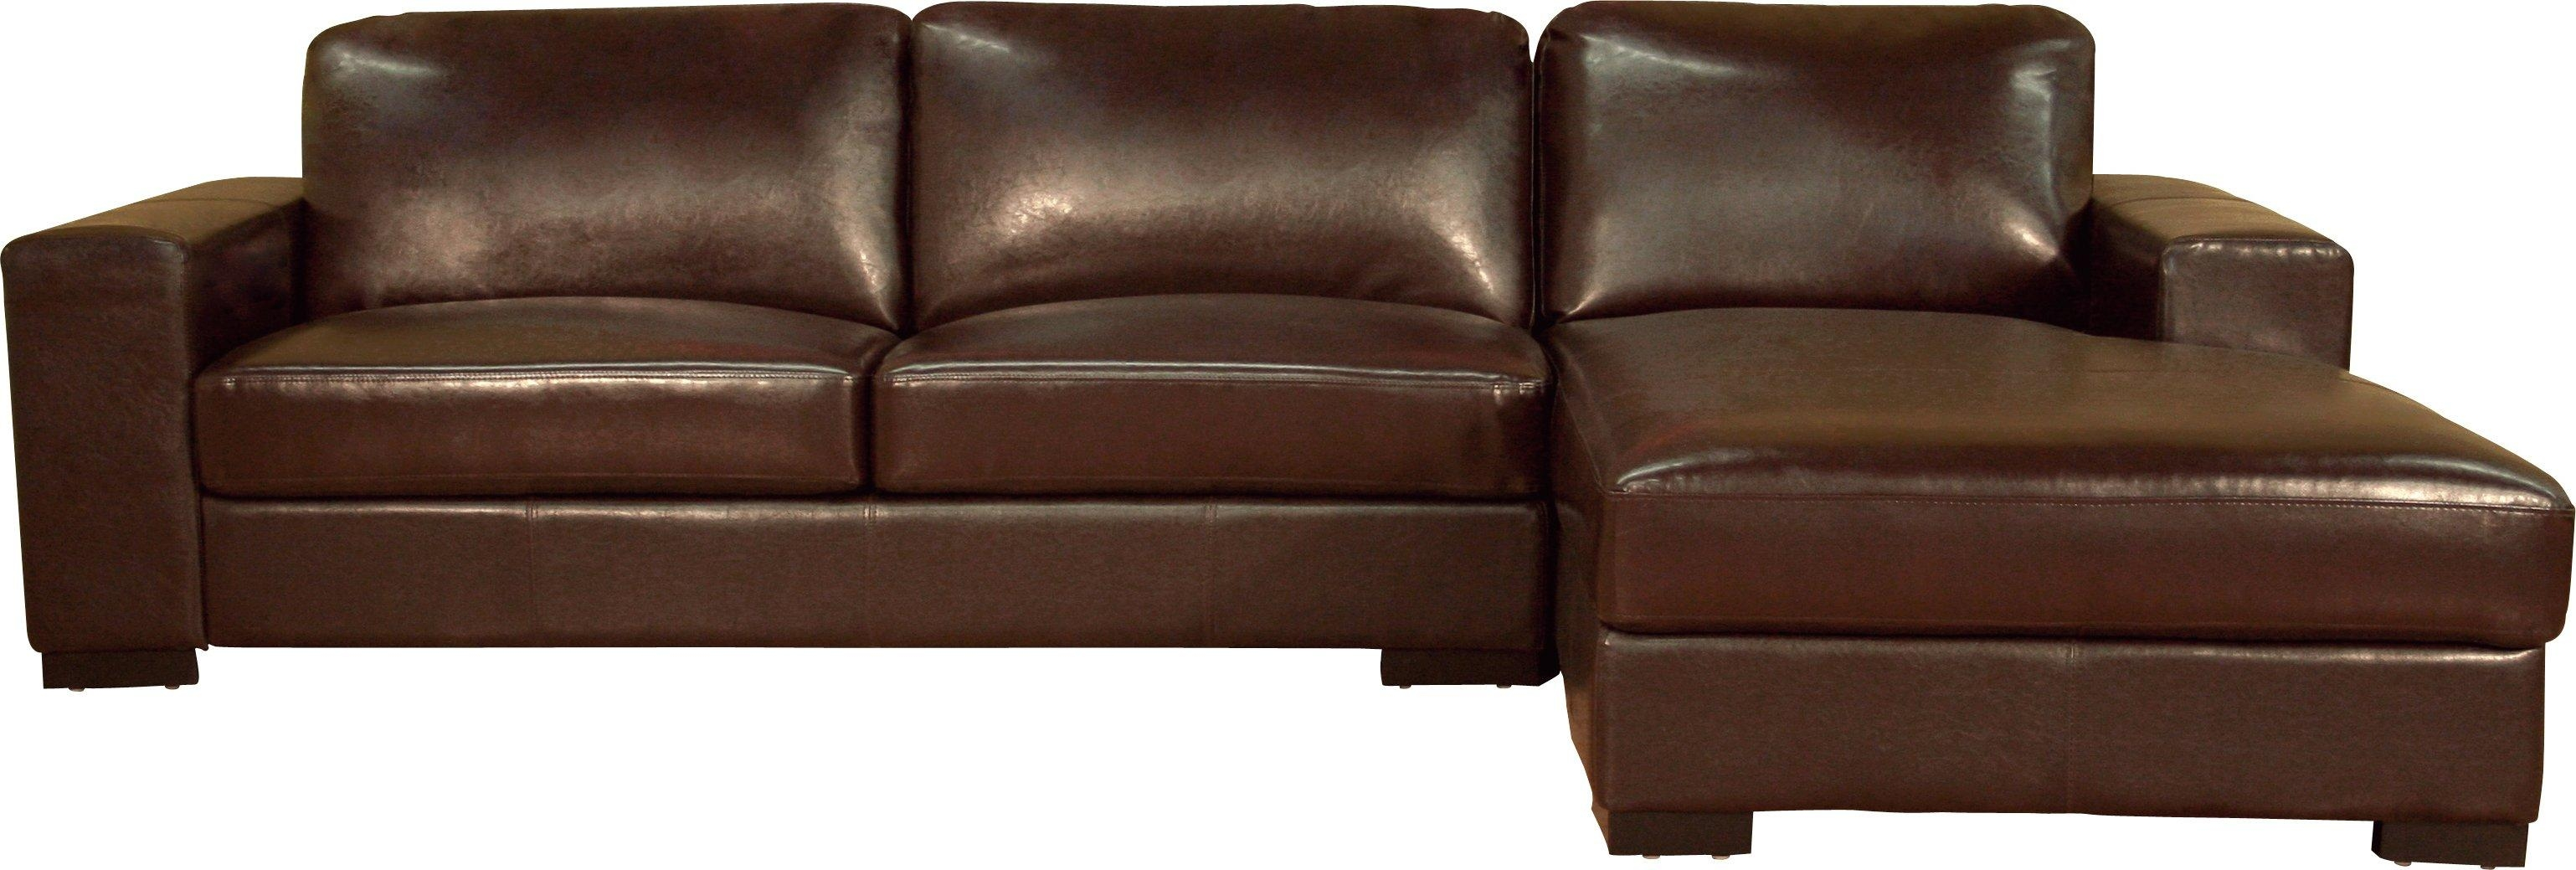 Furniture: Fancy Sleeper Sofa Ikea For Your Best Living Room For Ikea Sectional Sleeper Sofa (Image 4 of 20)